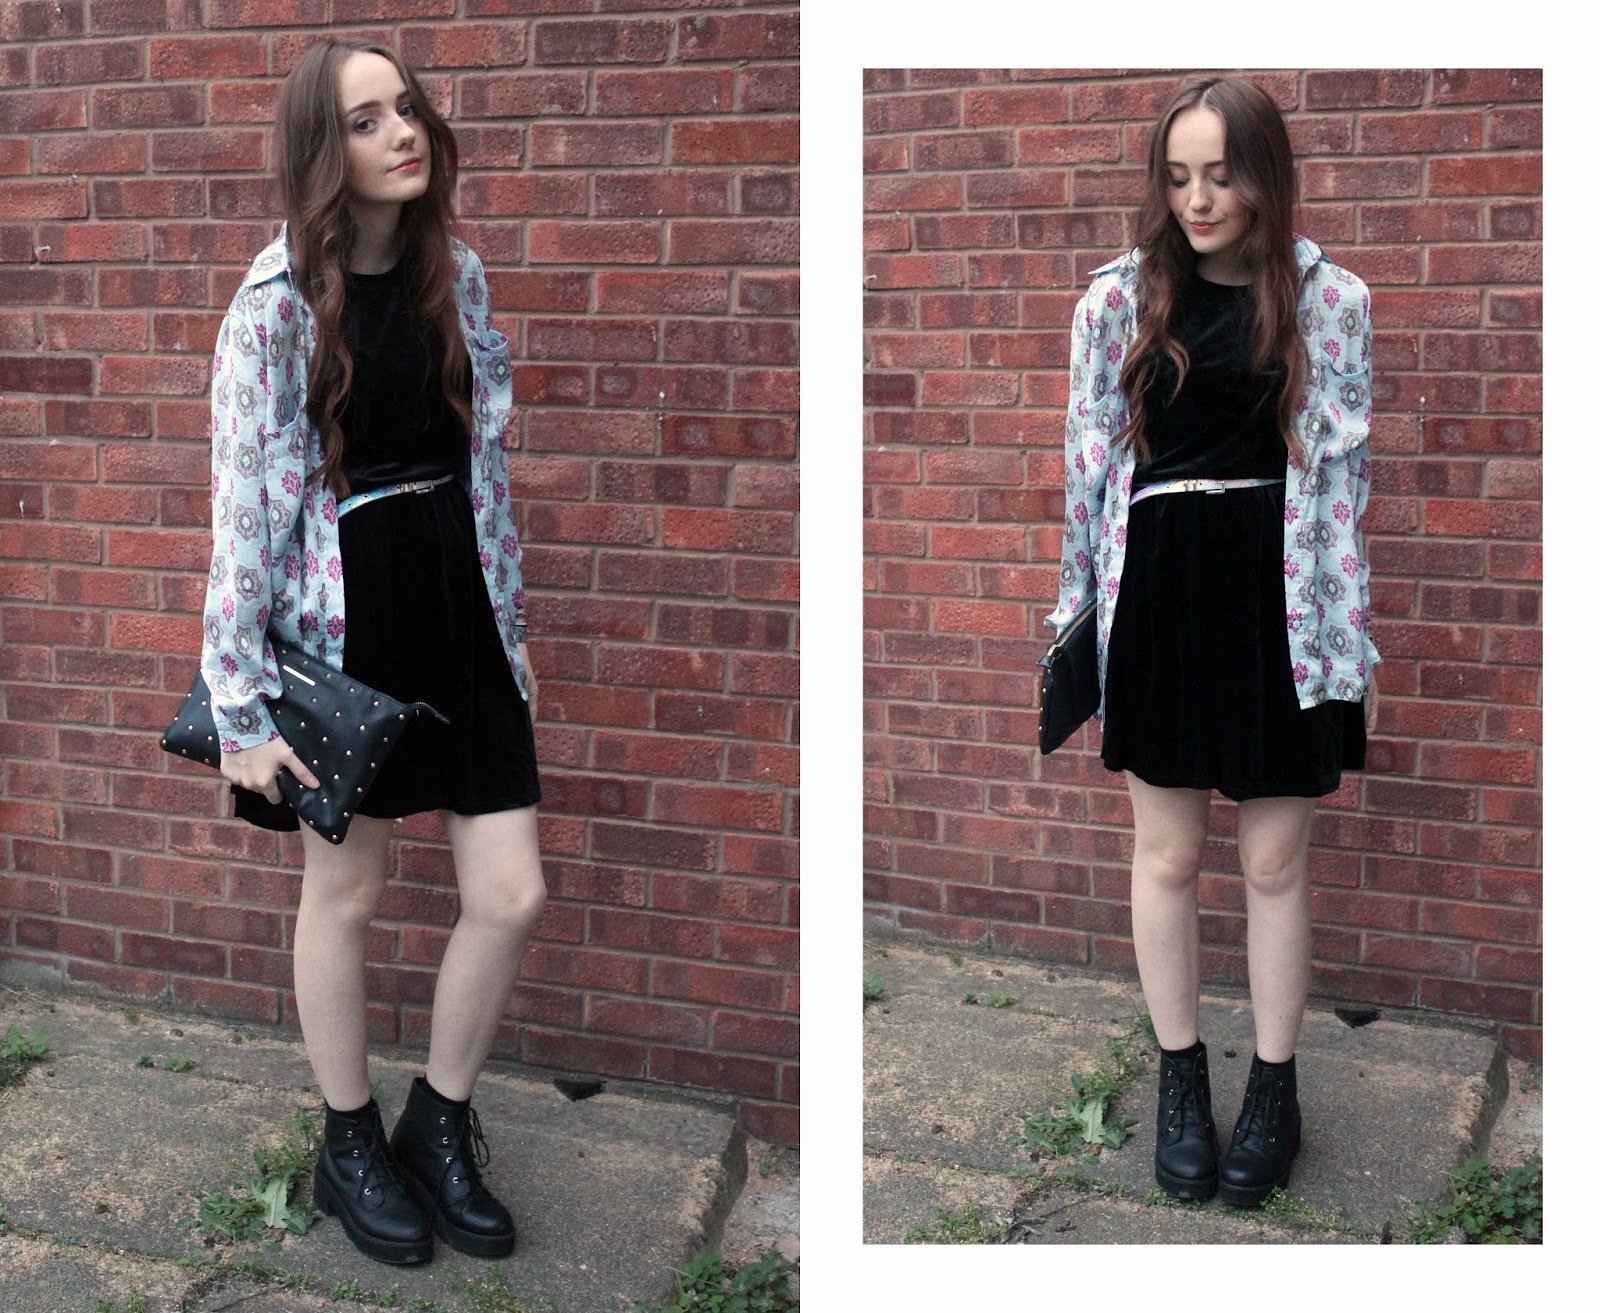 OOTD featuring black velvet skater dress from get the label, missguided printed blue and pink shirt, blue and pink iridescent belt from primark, asos revolution ankle boots and black studded clutch bag from river island